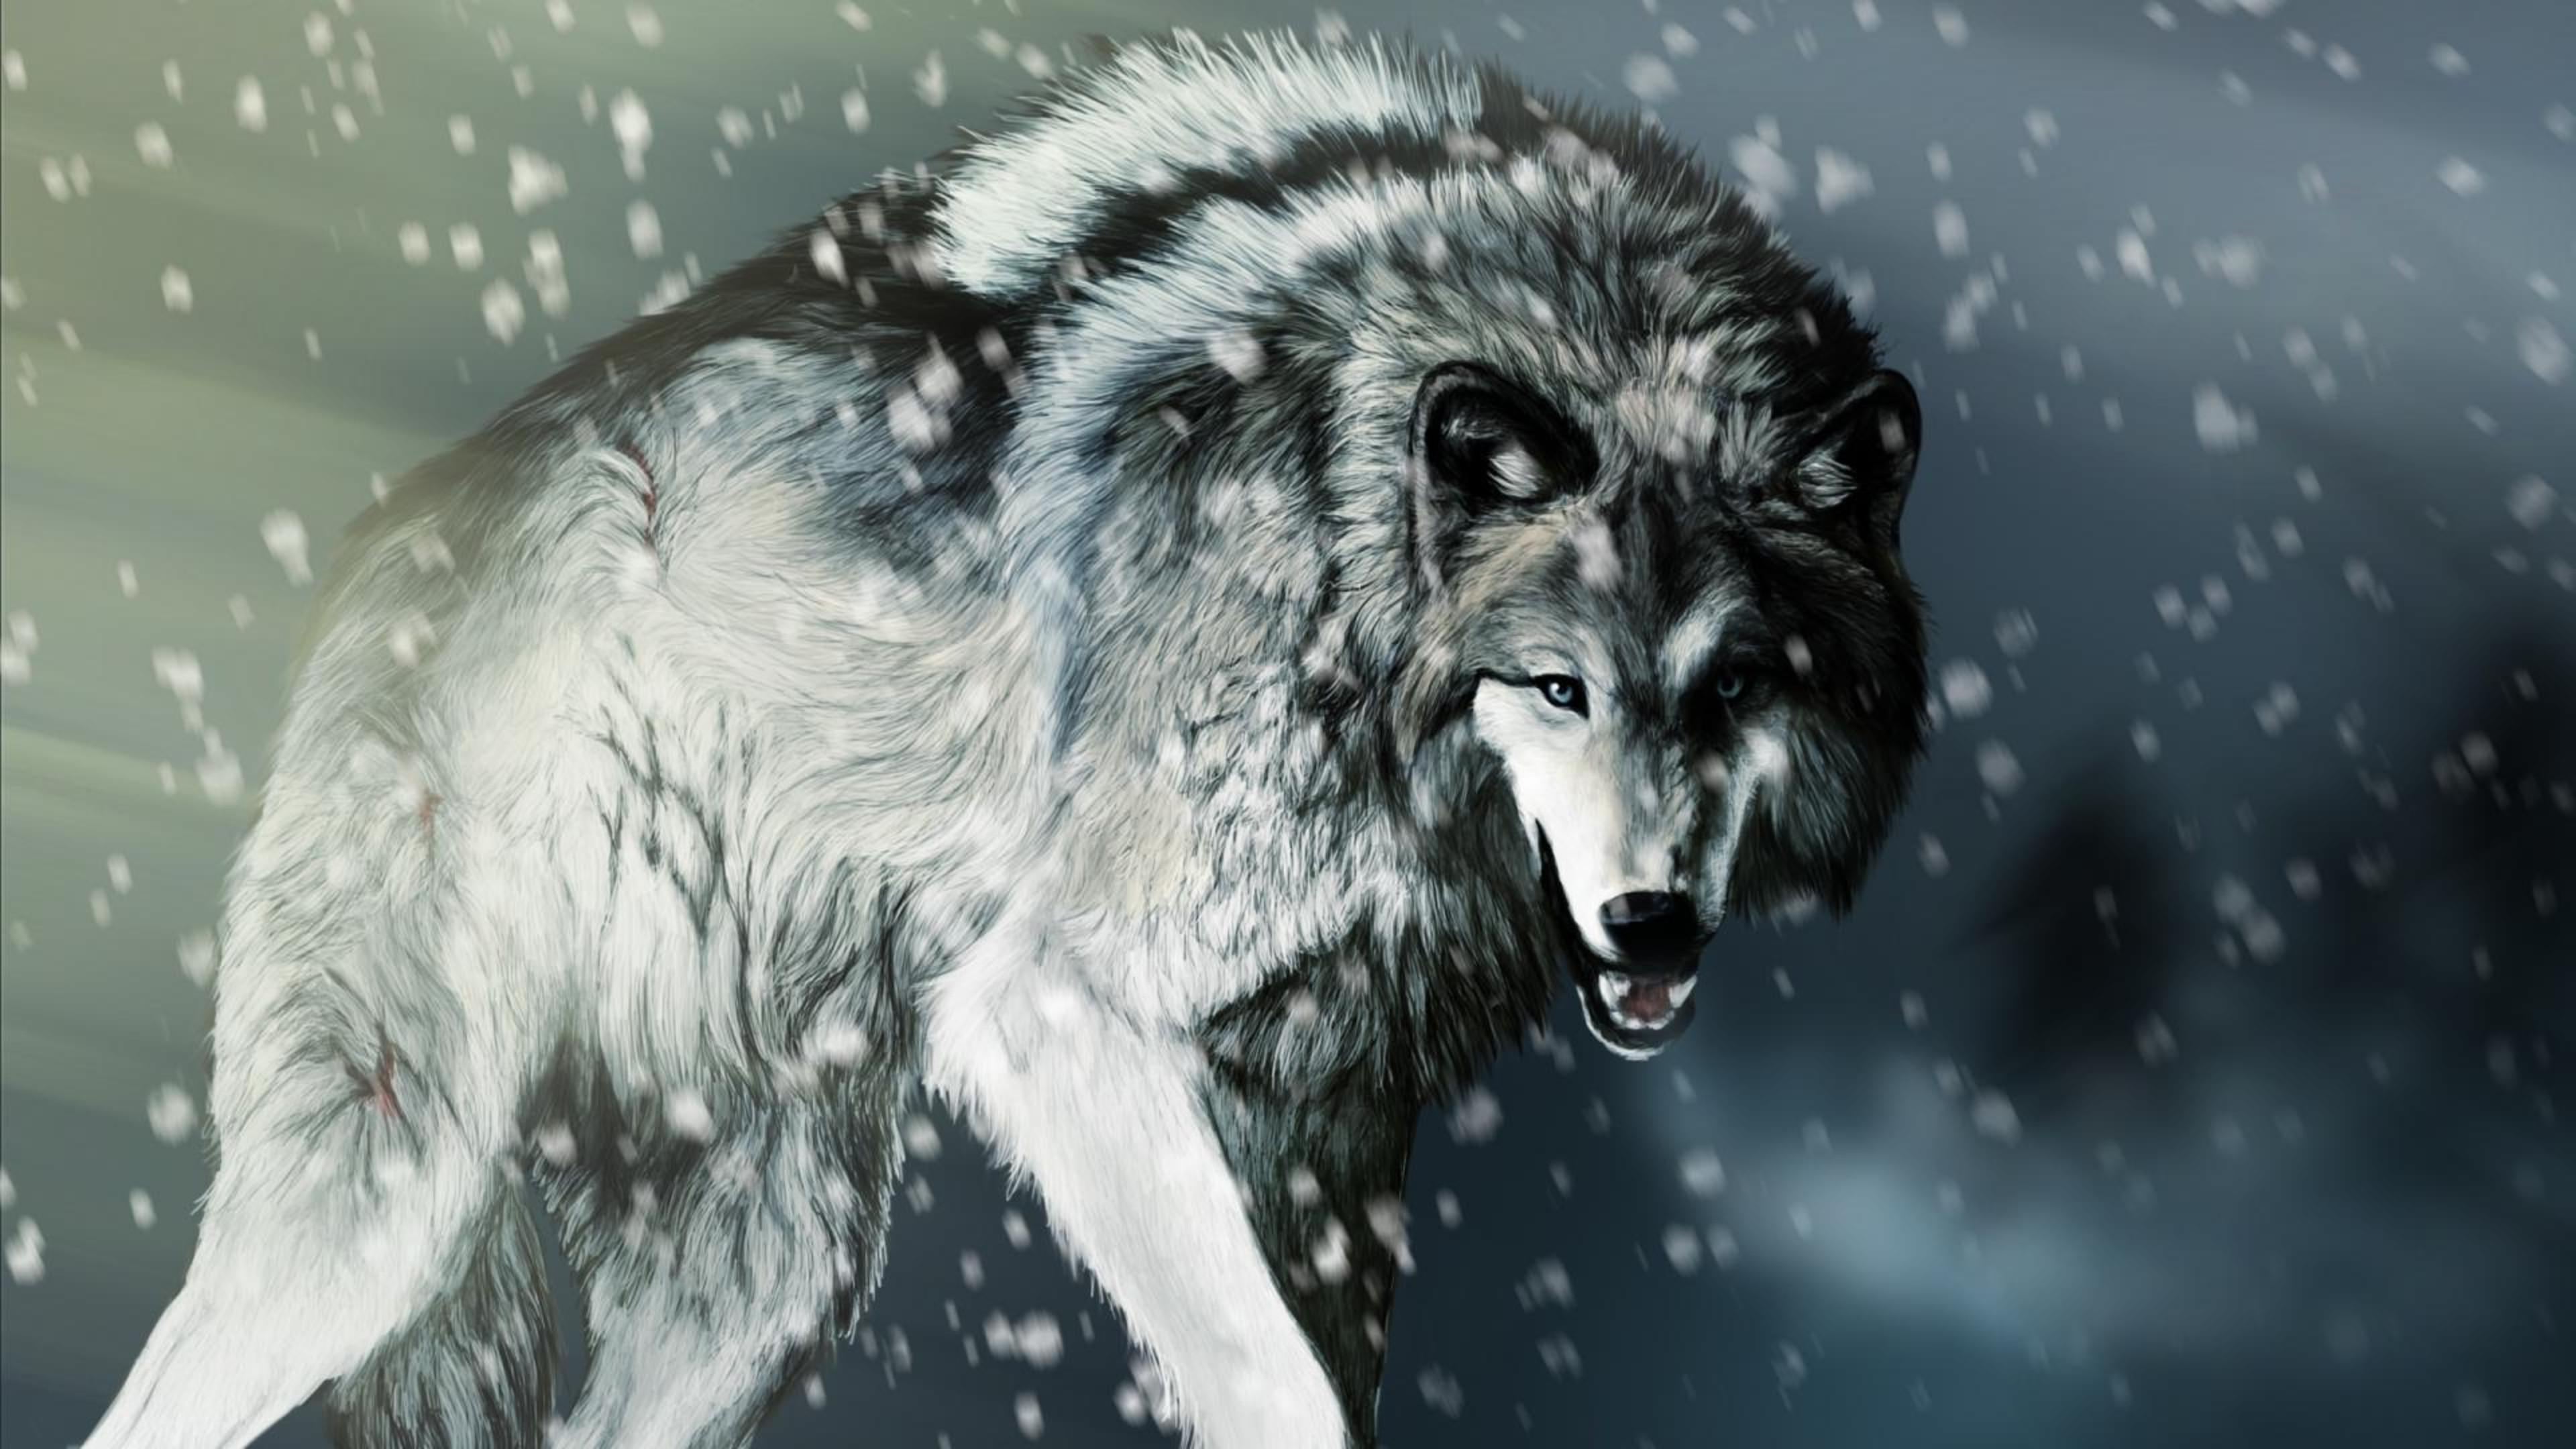 2400x1696 Anime Wolf Wallpapers Desktop Cool Pics Hd